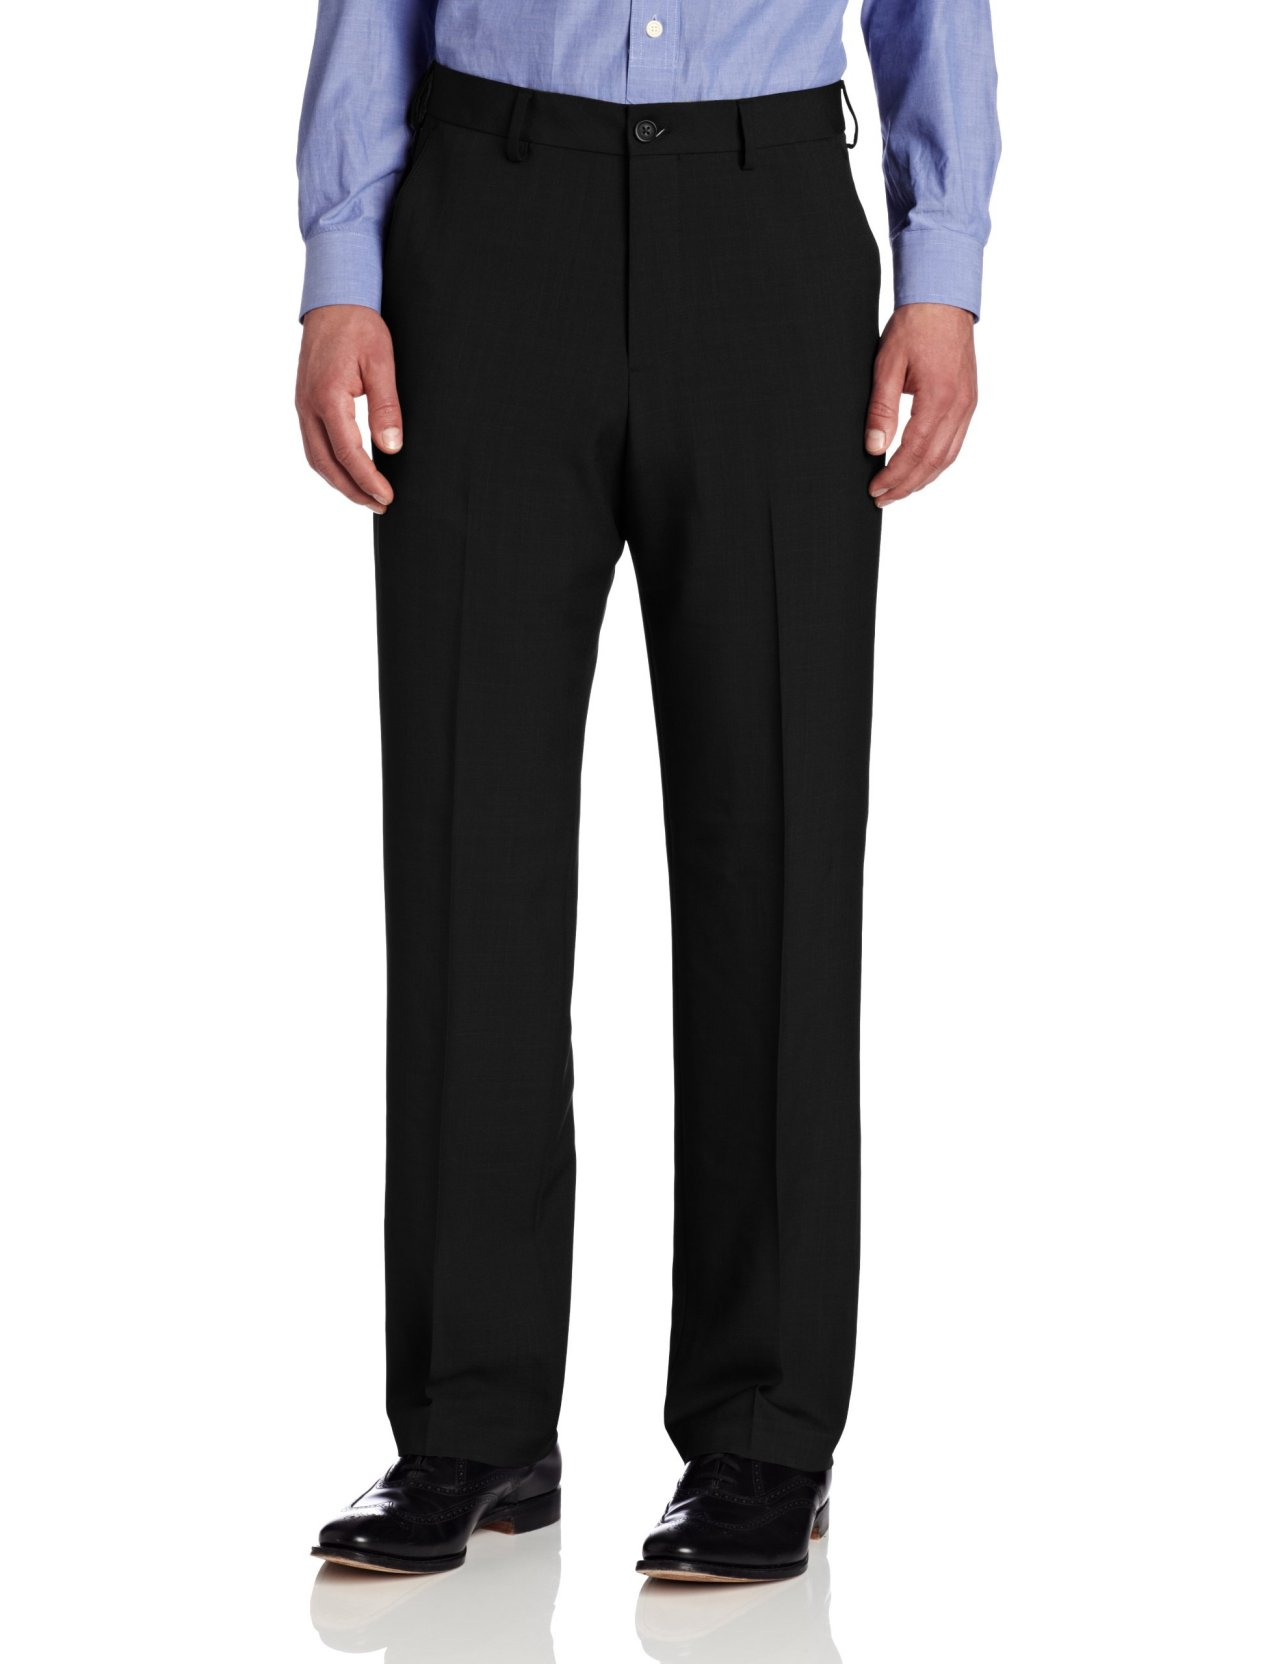 Van Heusen New Black Extender Waist Pants Mens 40x36 Dress